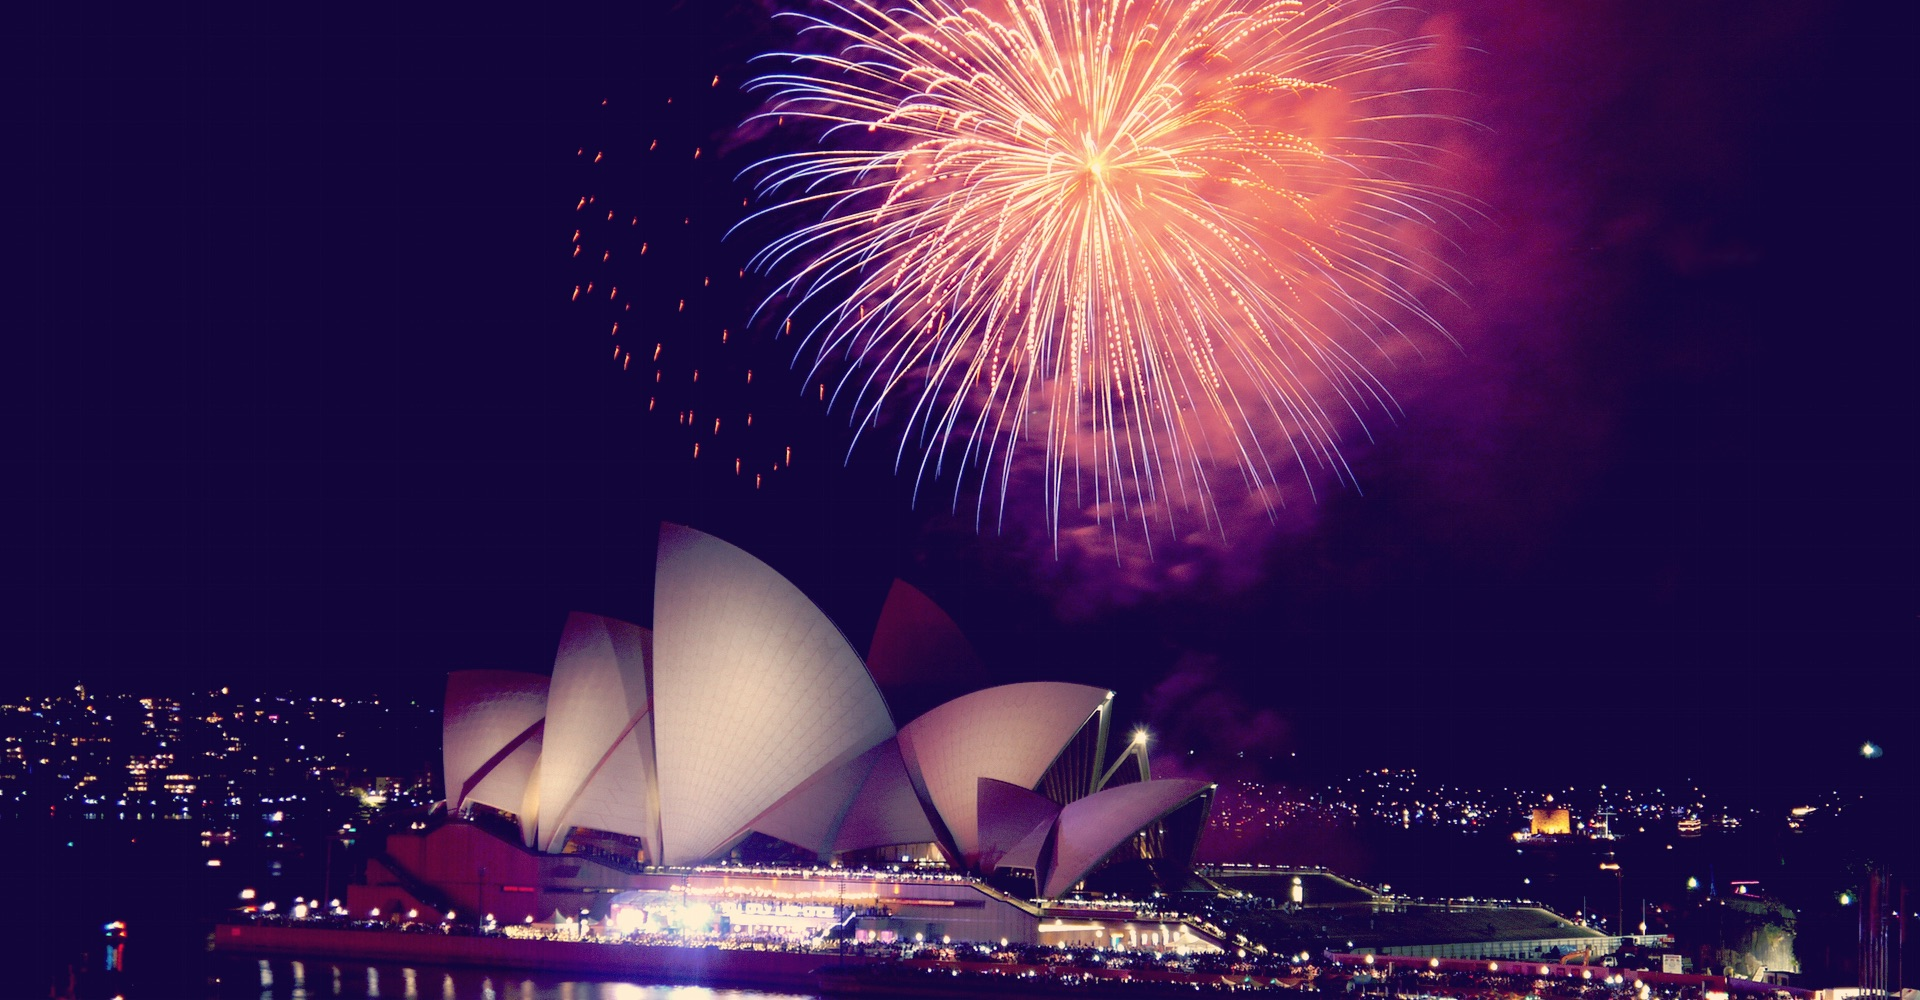 New Years in Sydney